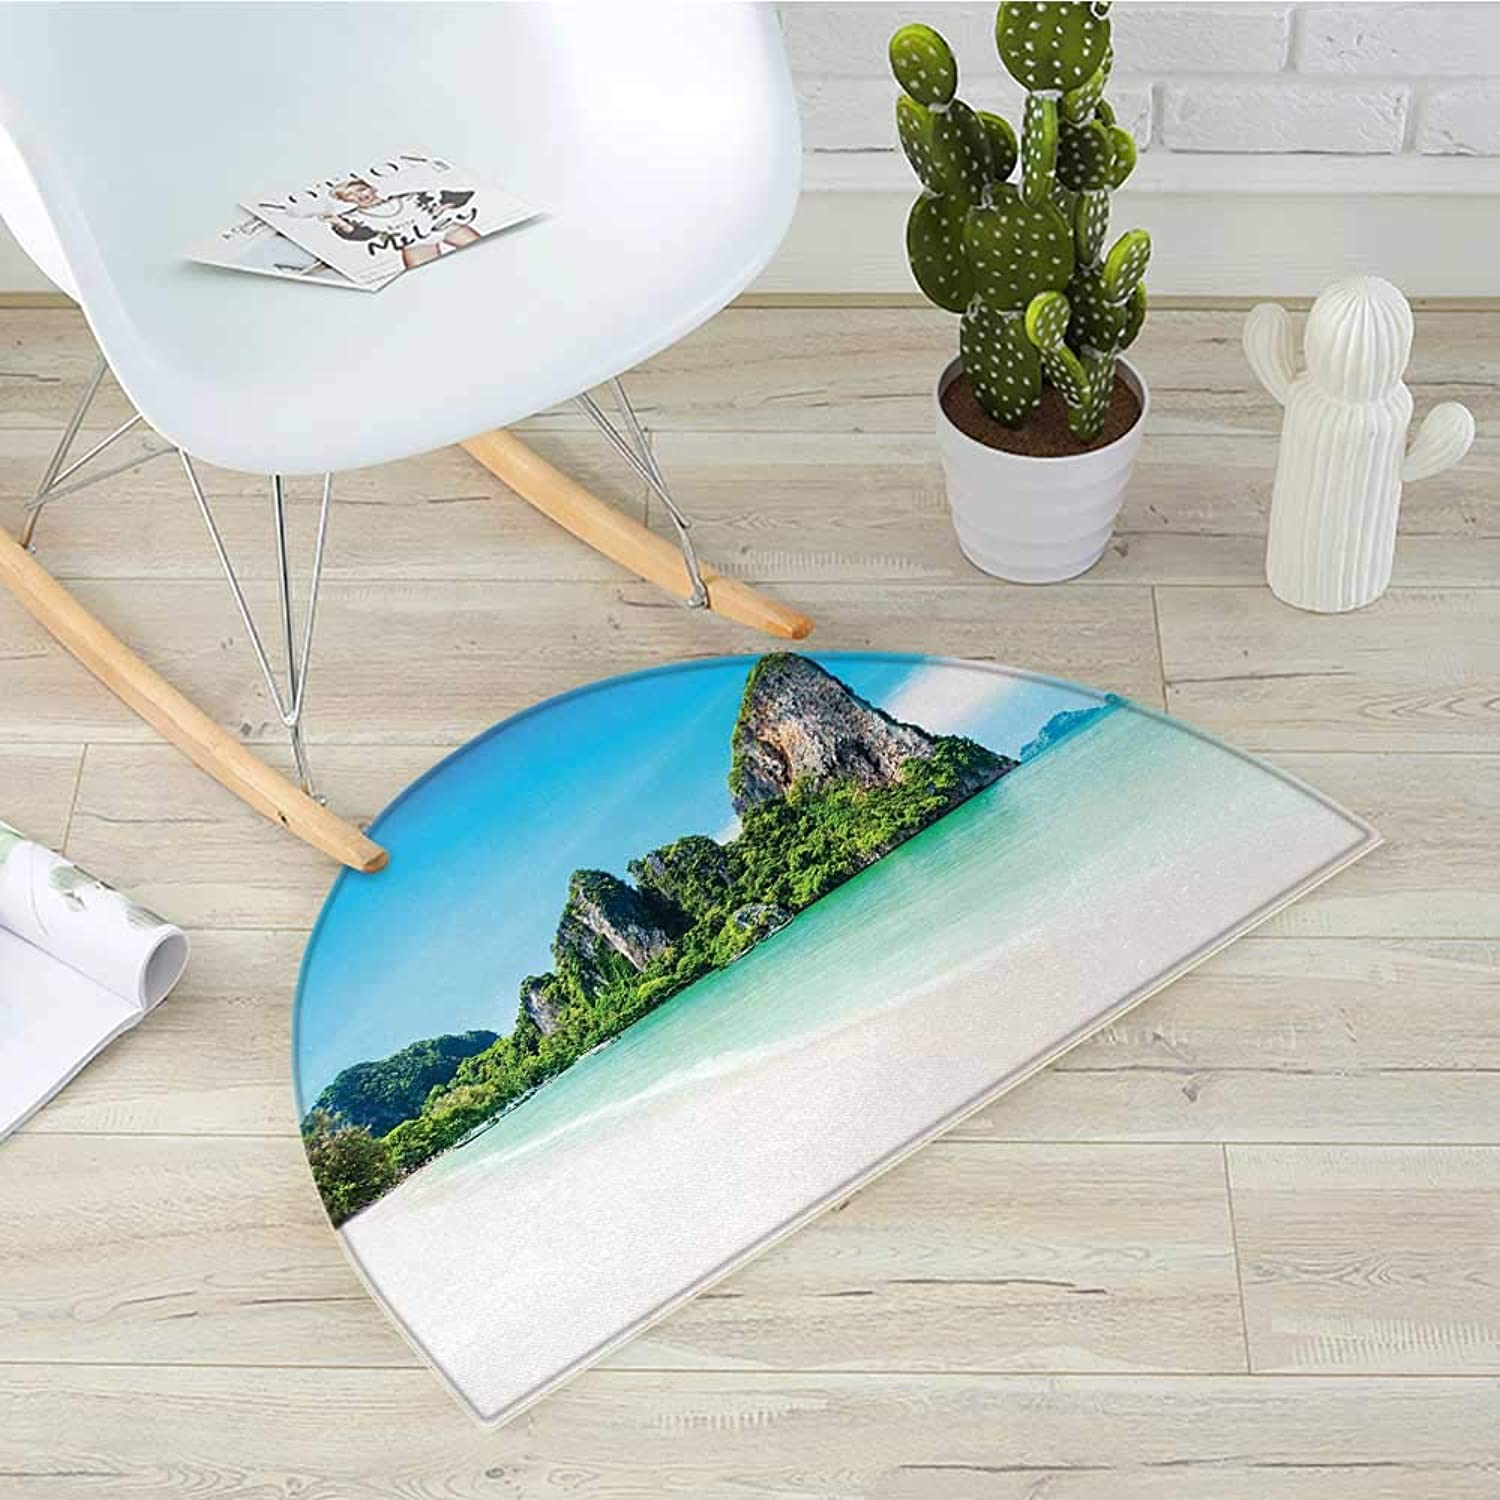 Landscape Half Round Door mats Scenic View of a Beach with Lush Greenery and Limestone Rocks Summer Journey Bathroom Mat H 31.5  xD 47.2  Multicolor